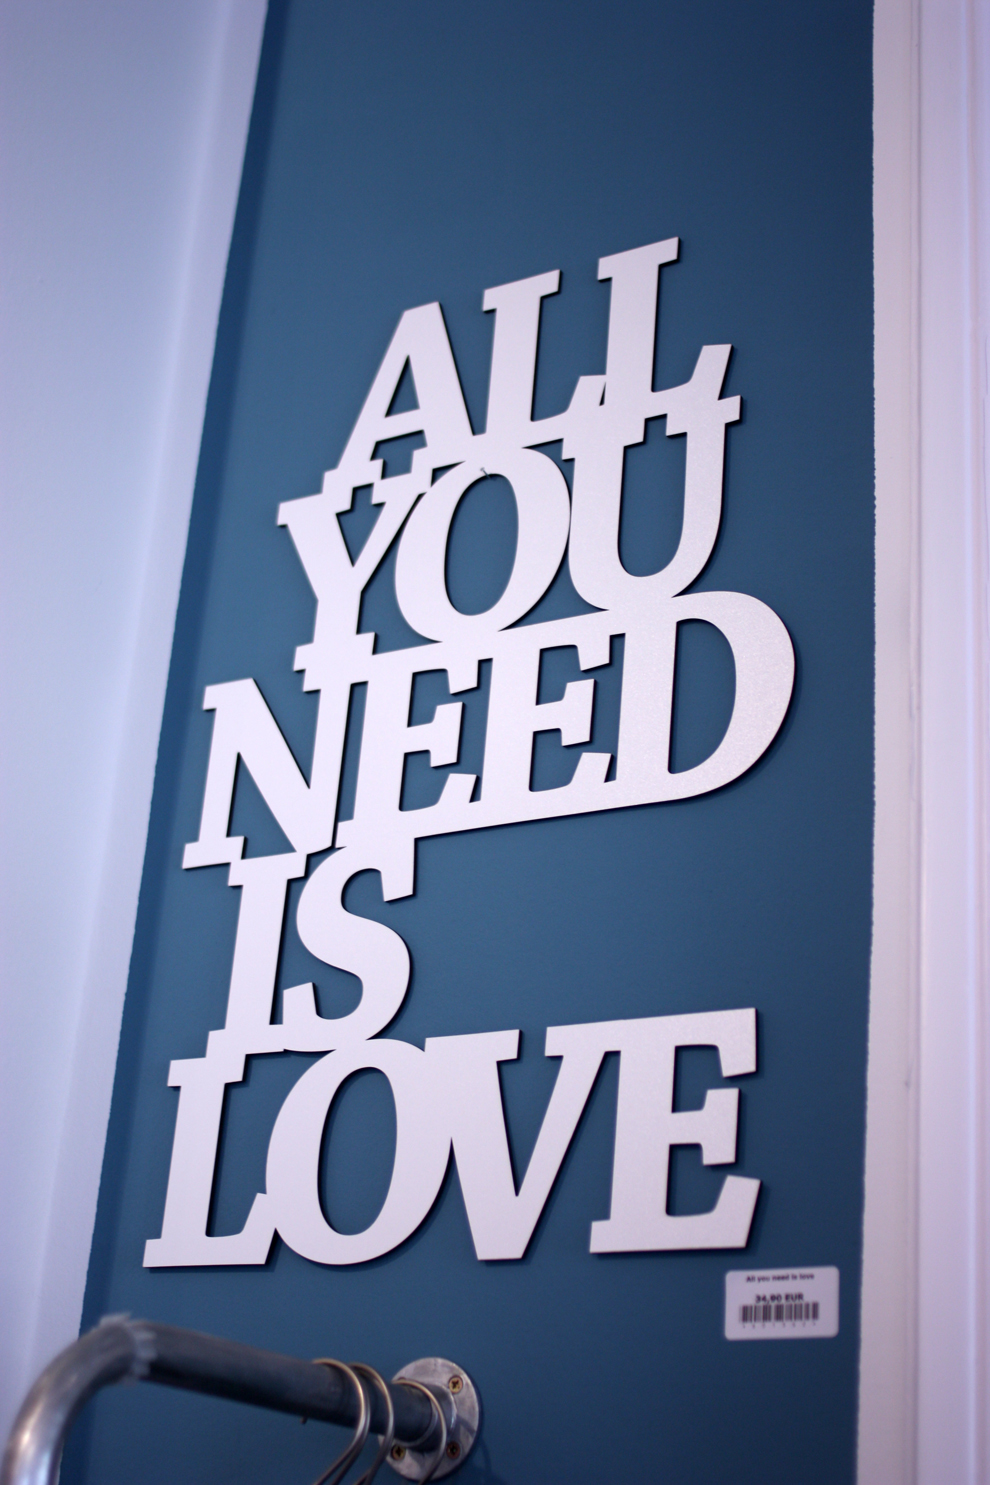 LIV_All_you_need_is_love